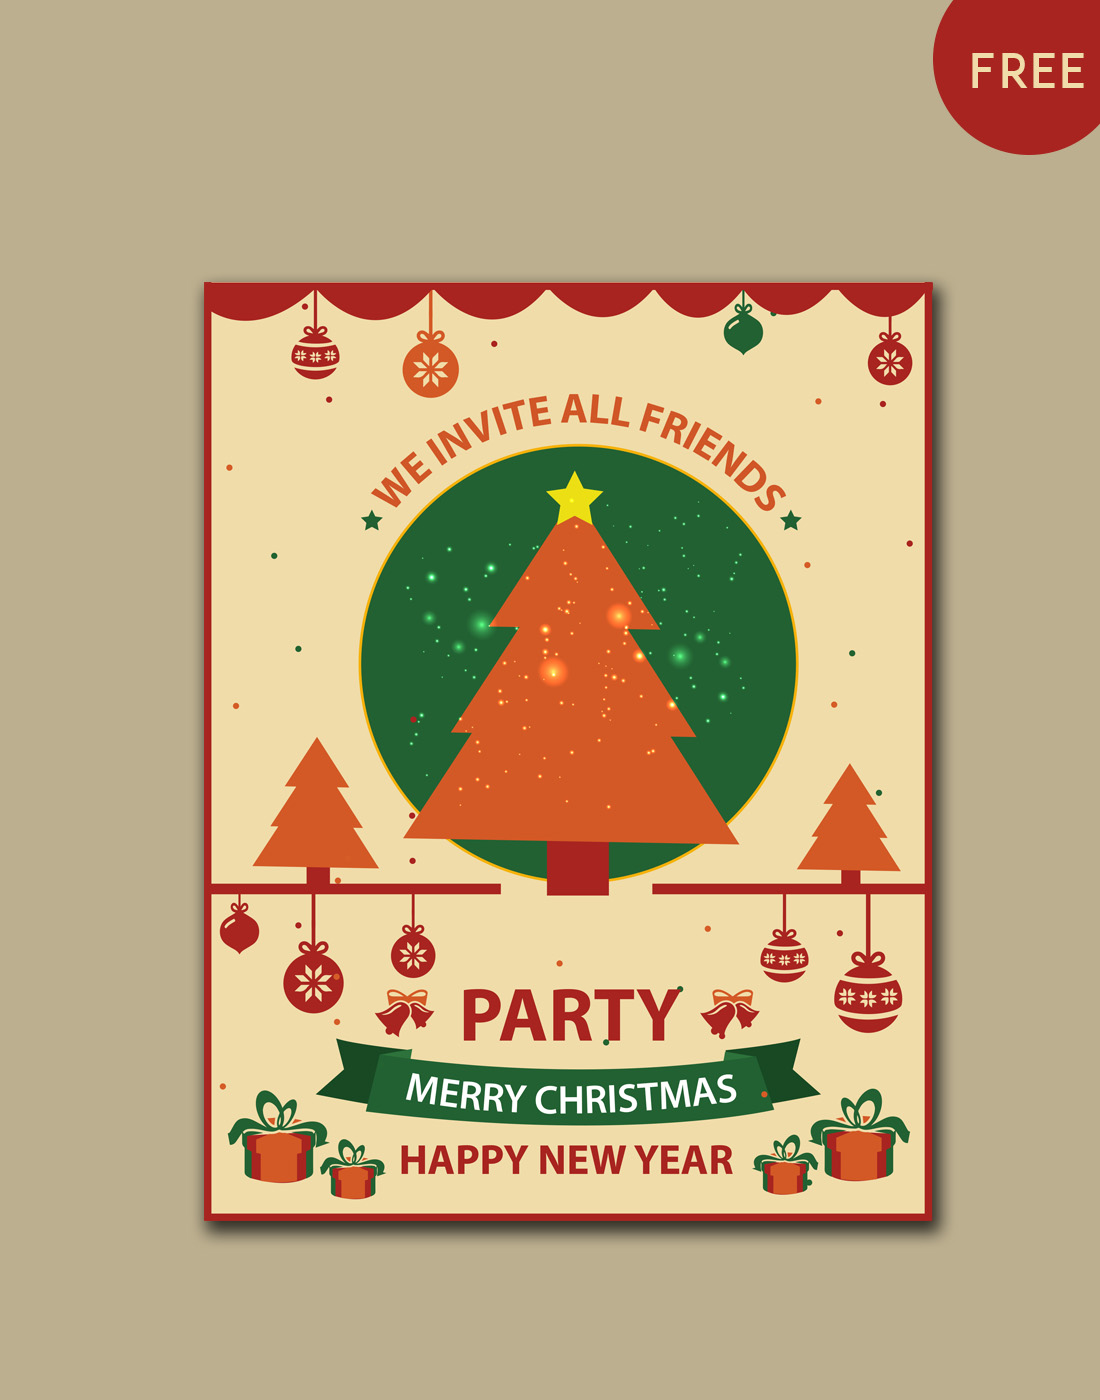 Merry christmas a newsletter responsive web template w3layouts. Com.